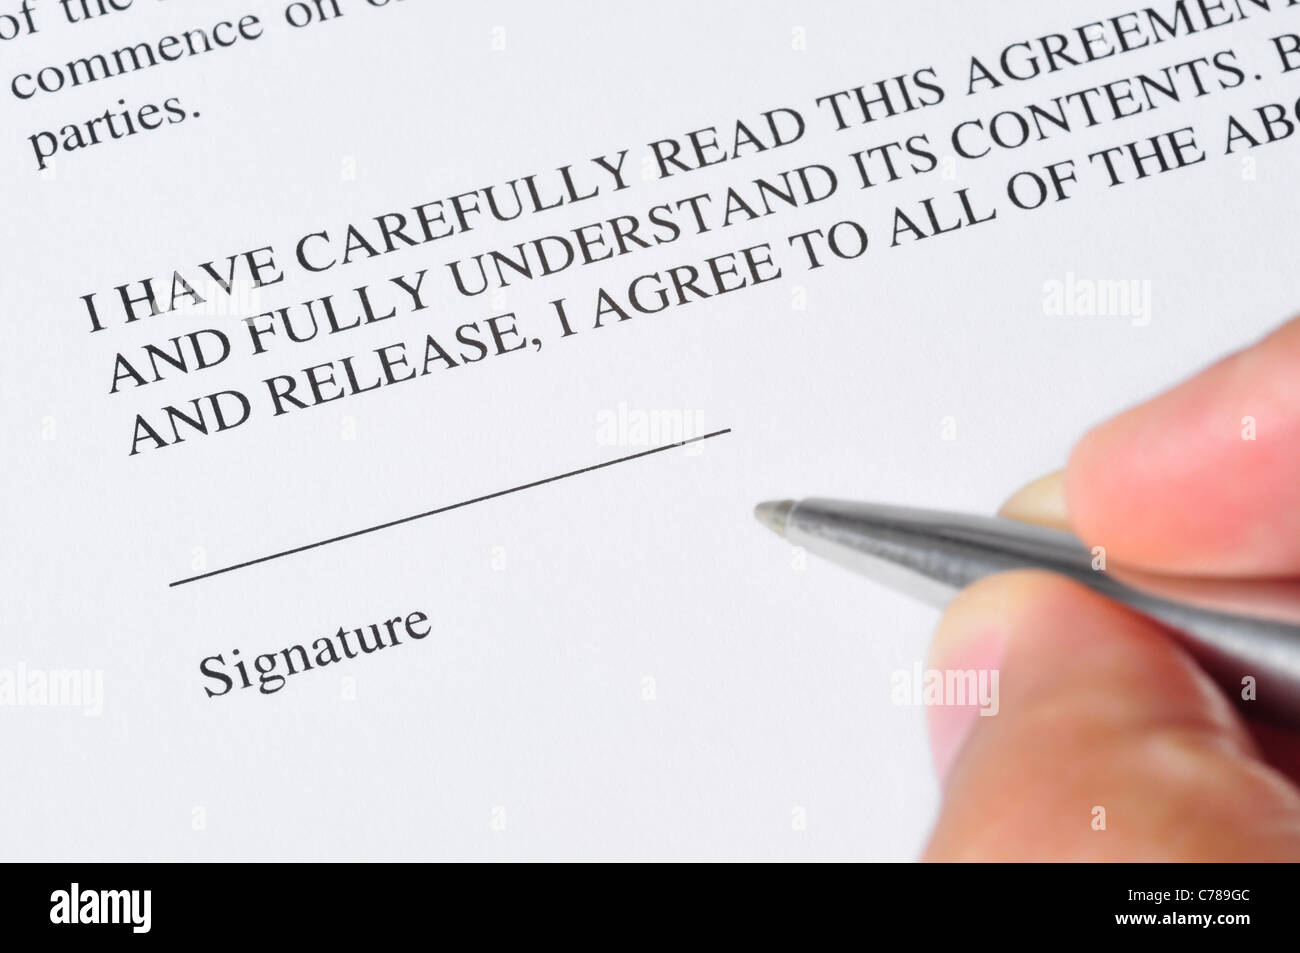 A hand, holding a pen, is ready to sign a document - Stock Image